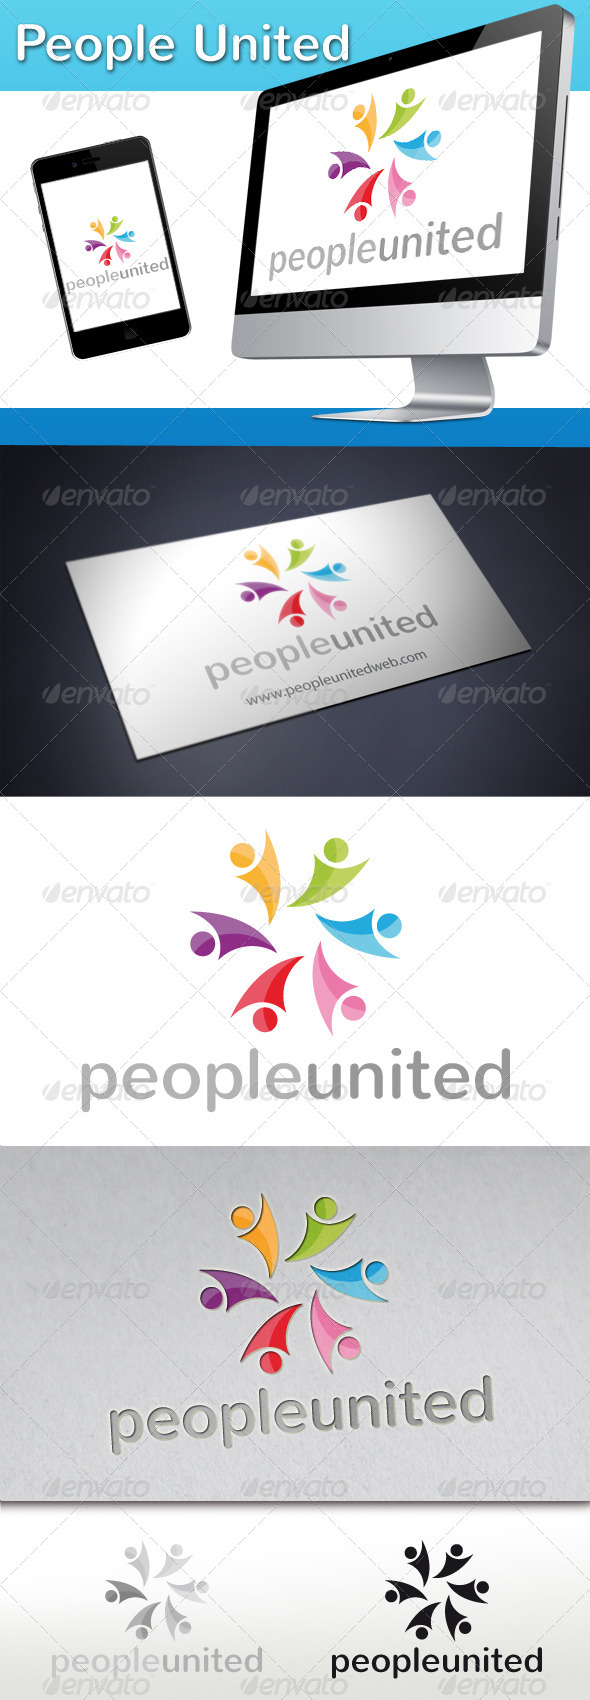 People United Logo